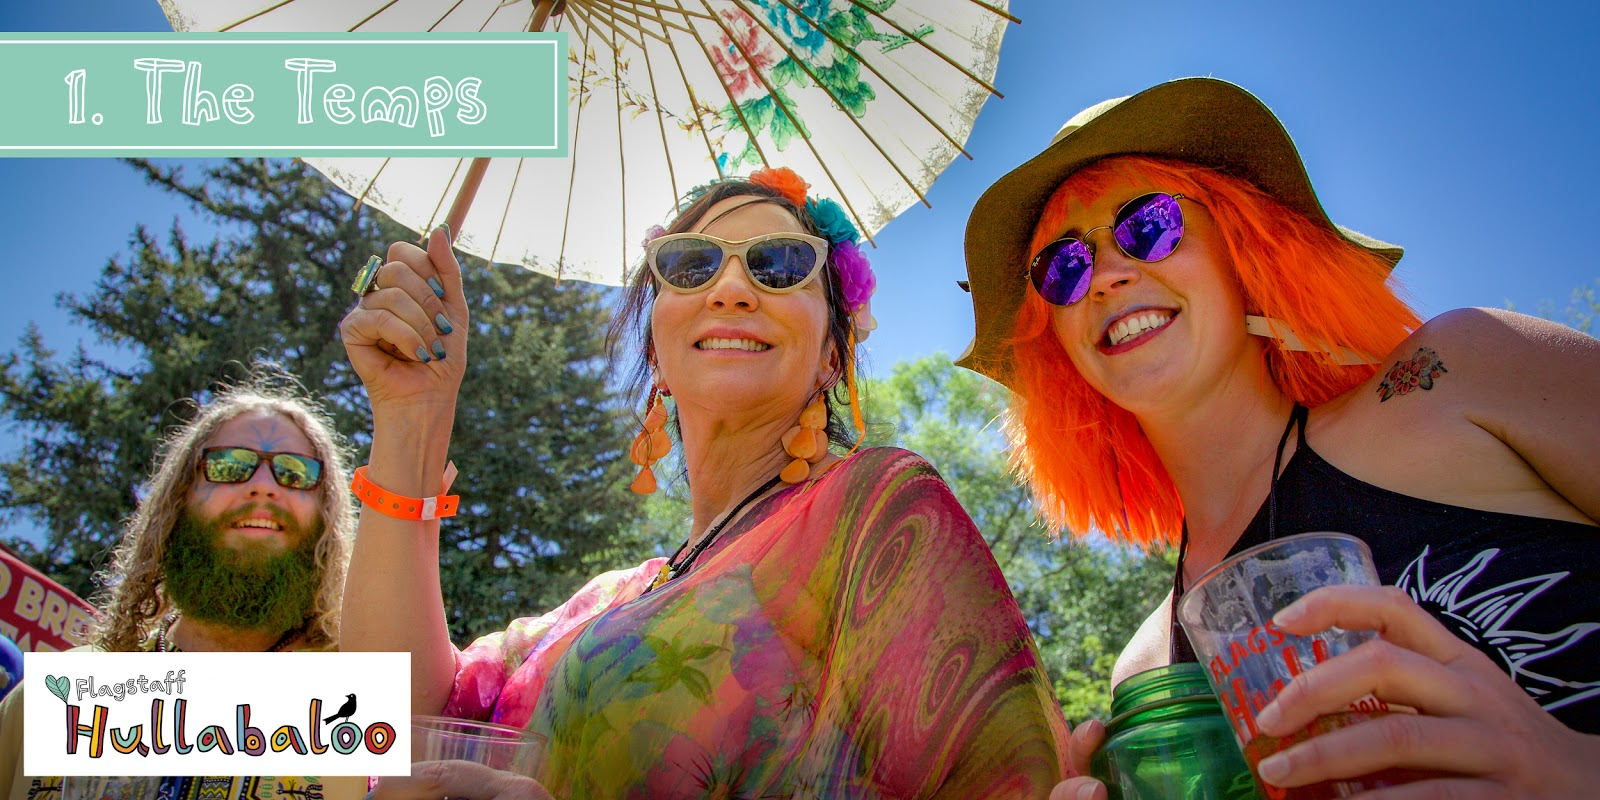 Flagstaff Hullabaloo Festival  Top 10 Reasons Why The